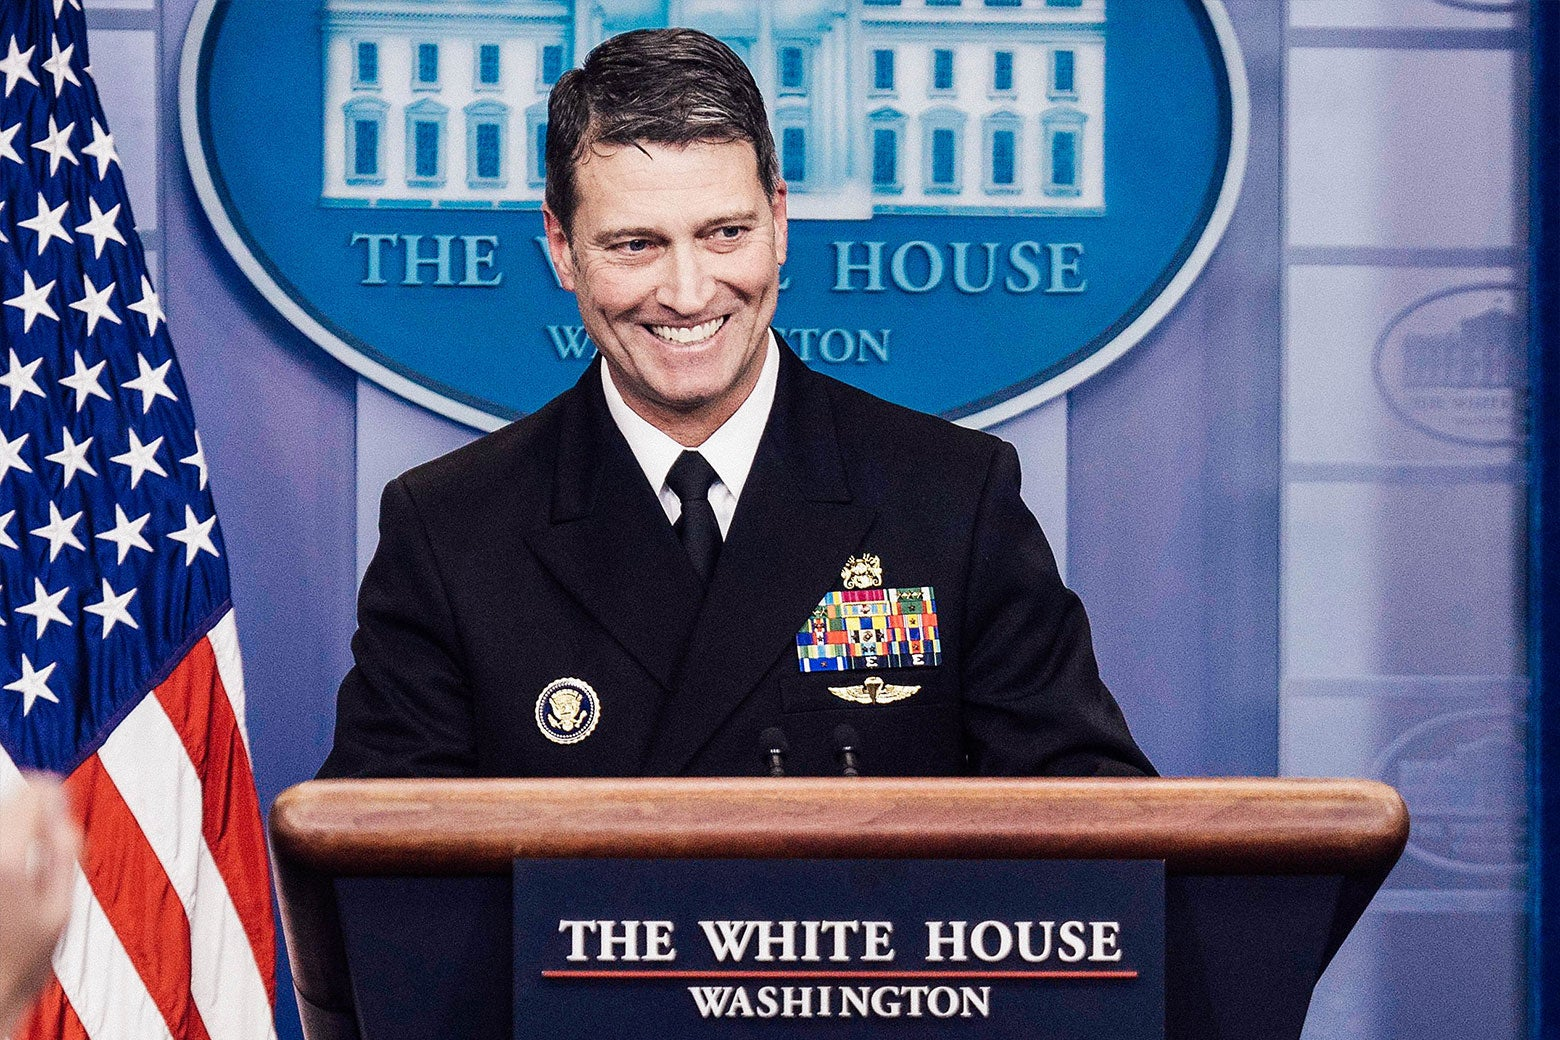 Ronny Jackson stands at the podium at a White House press briefing.